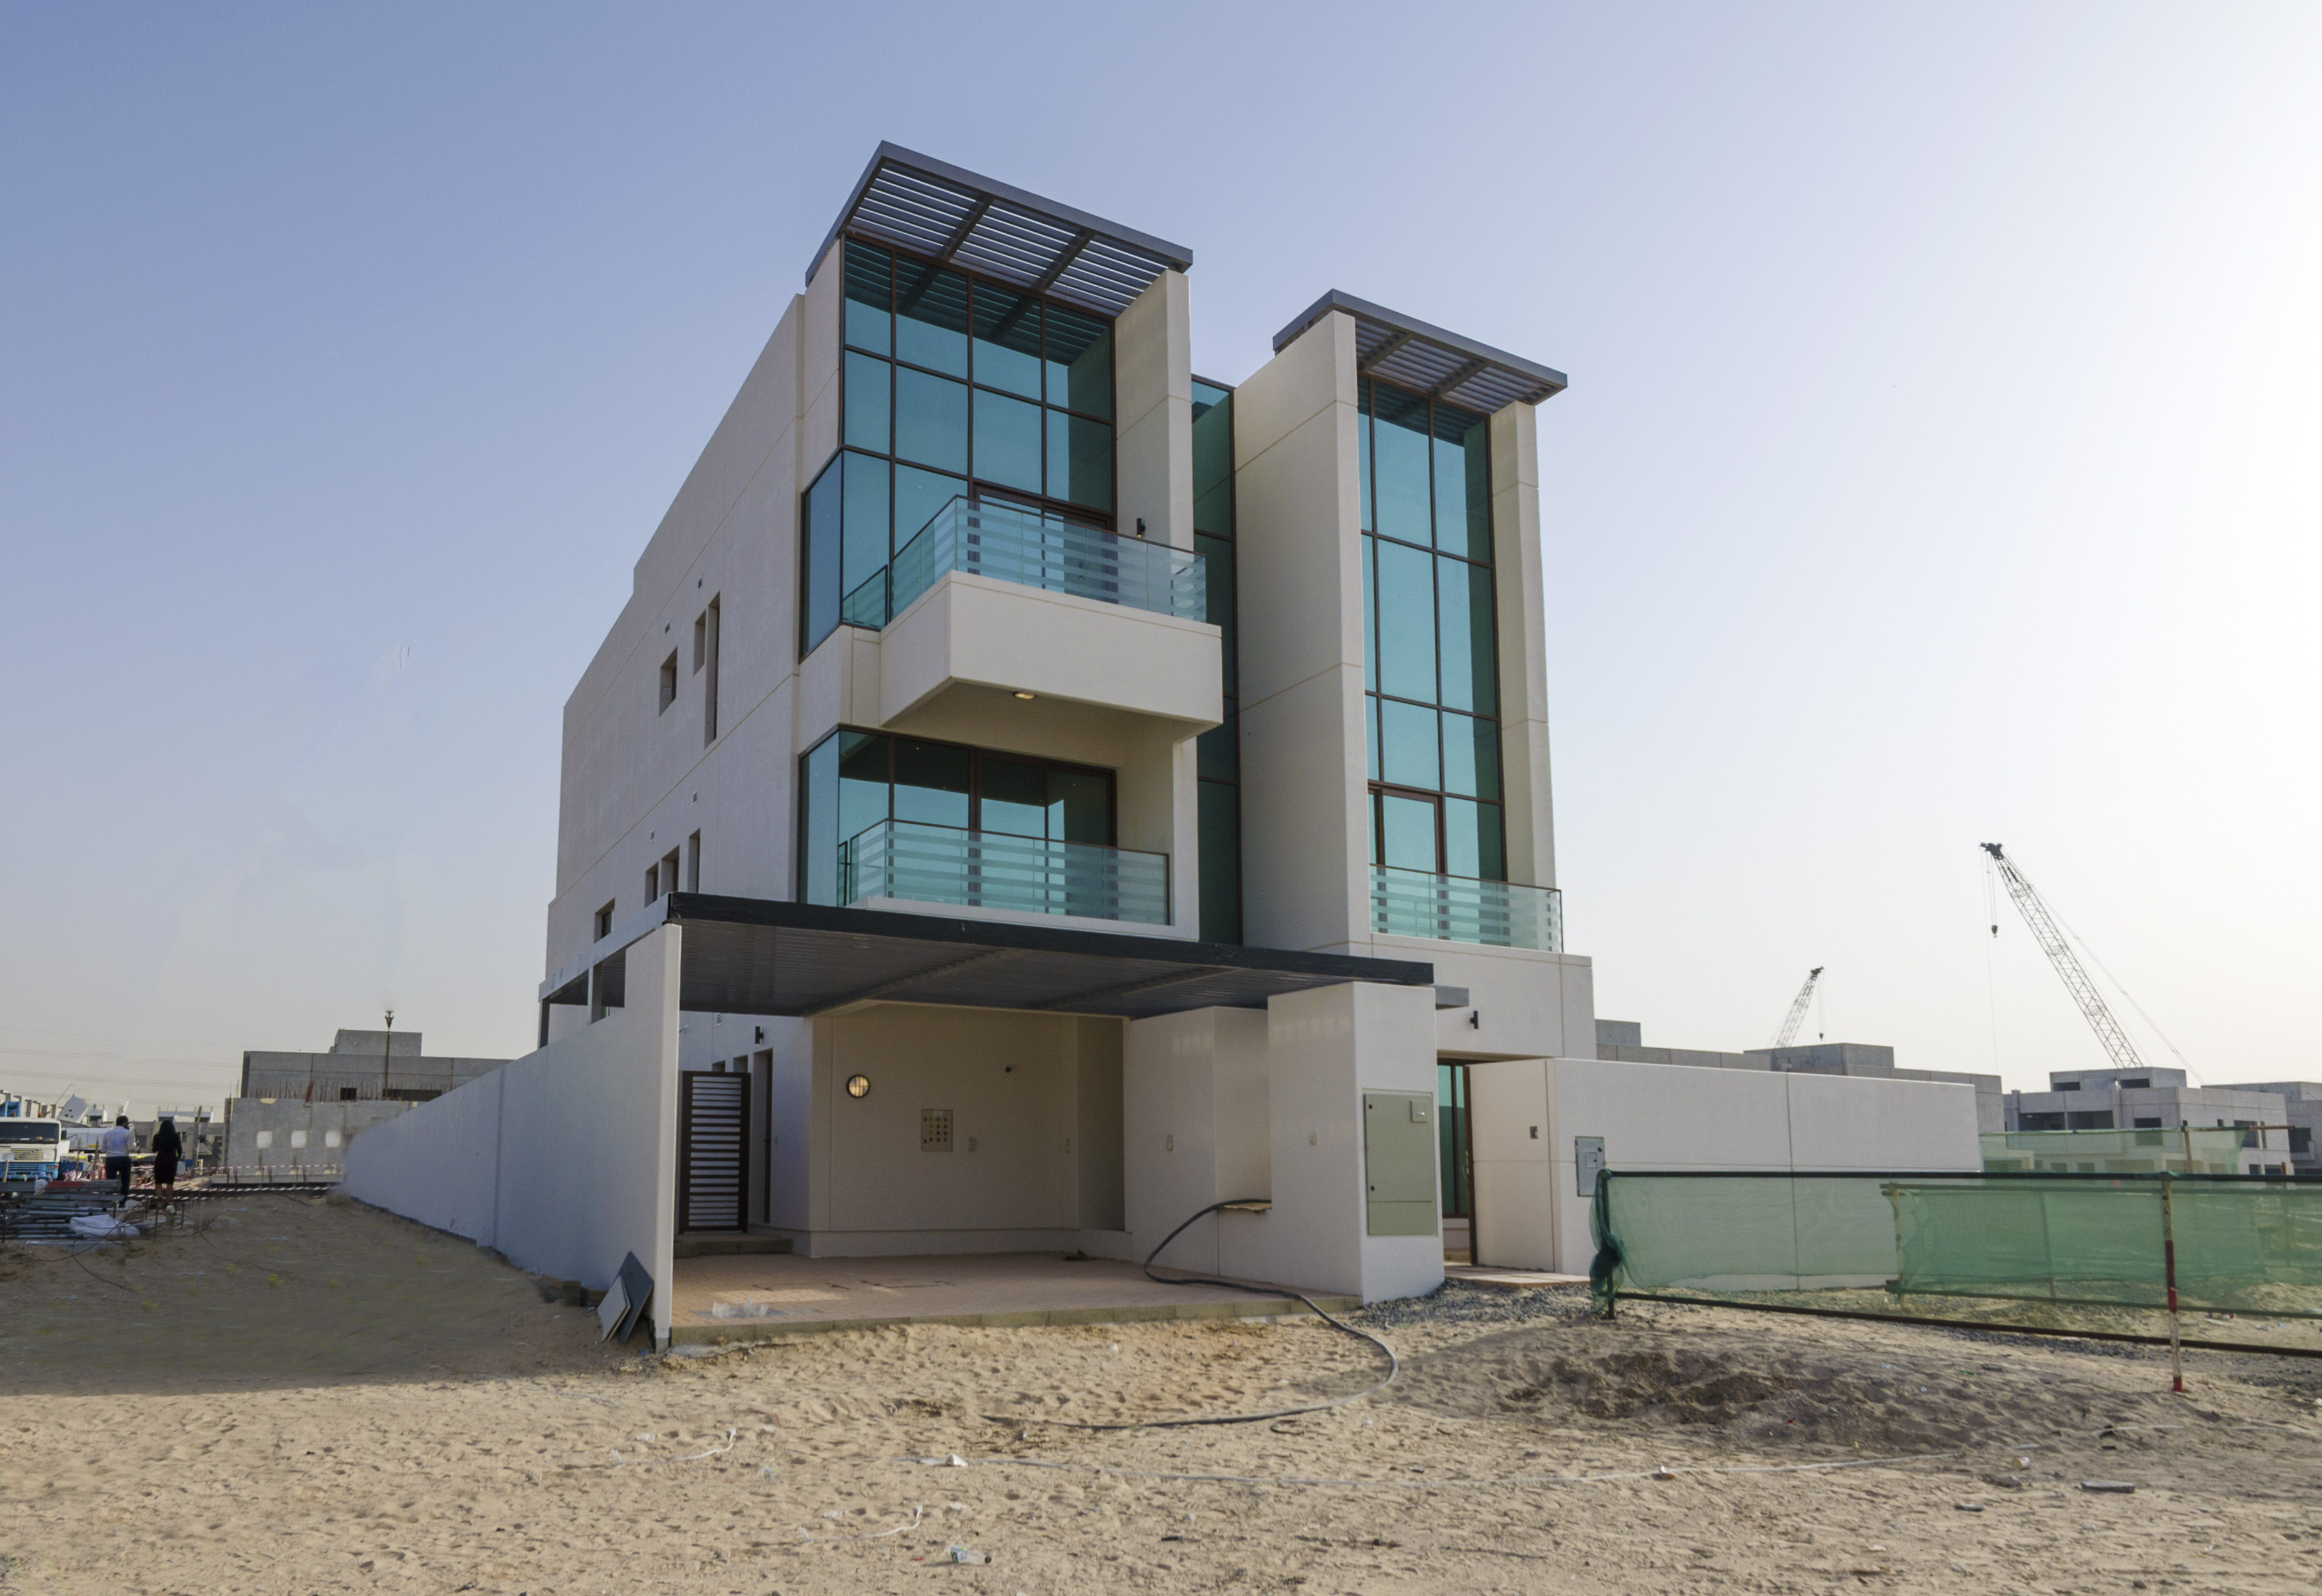 Grand 6 Bed Villa in the Heart of Dubai | MBR City